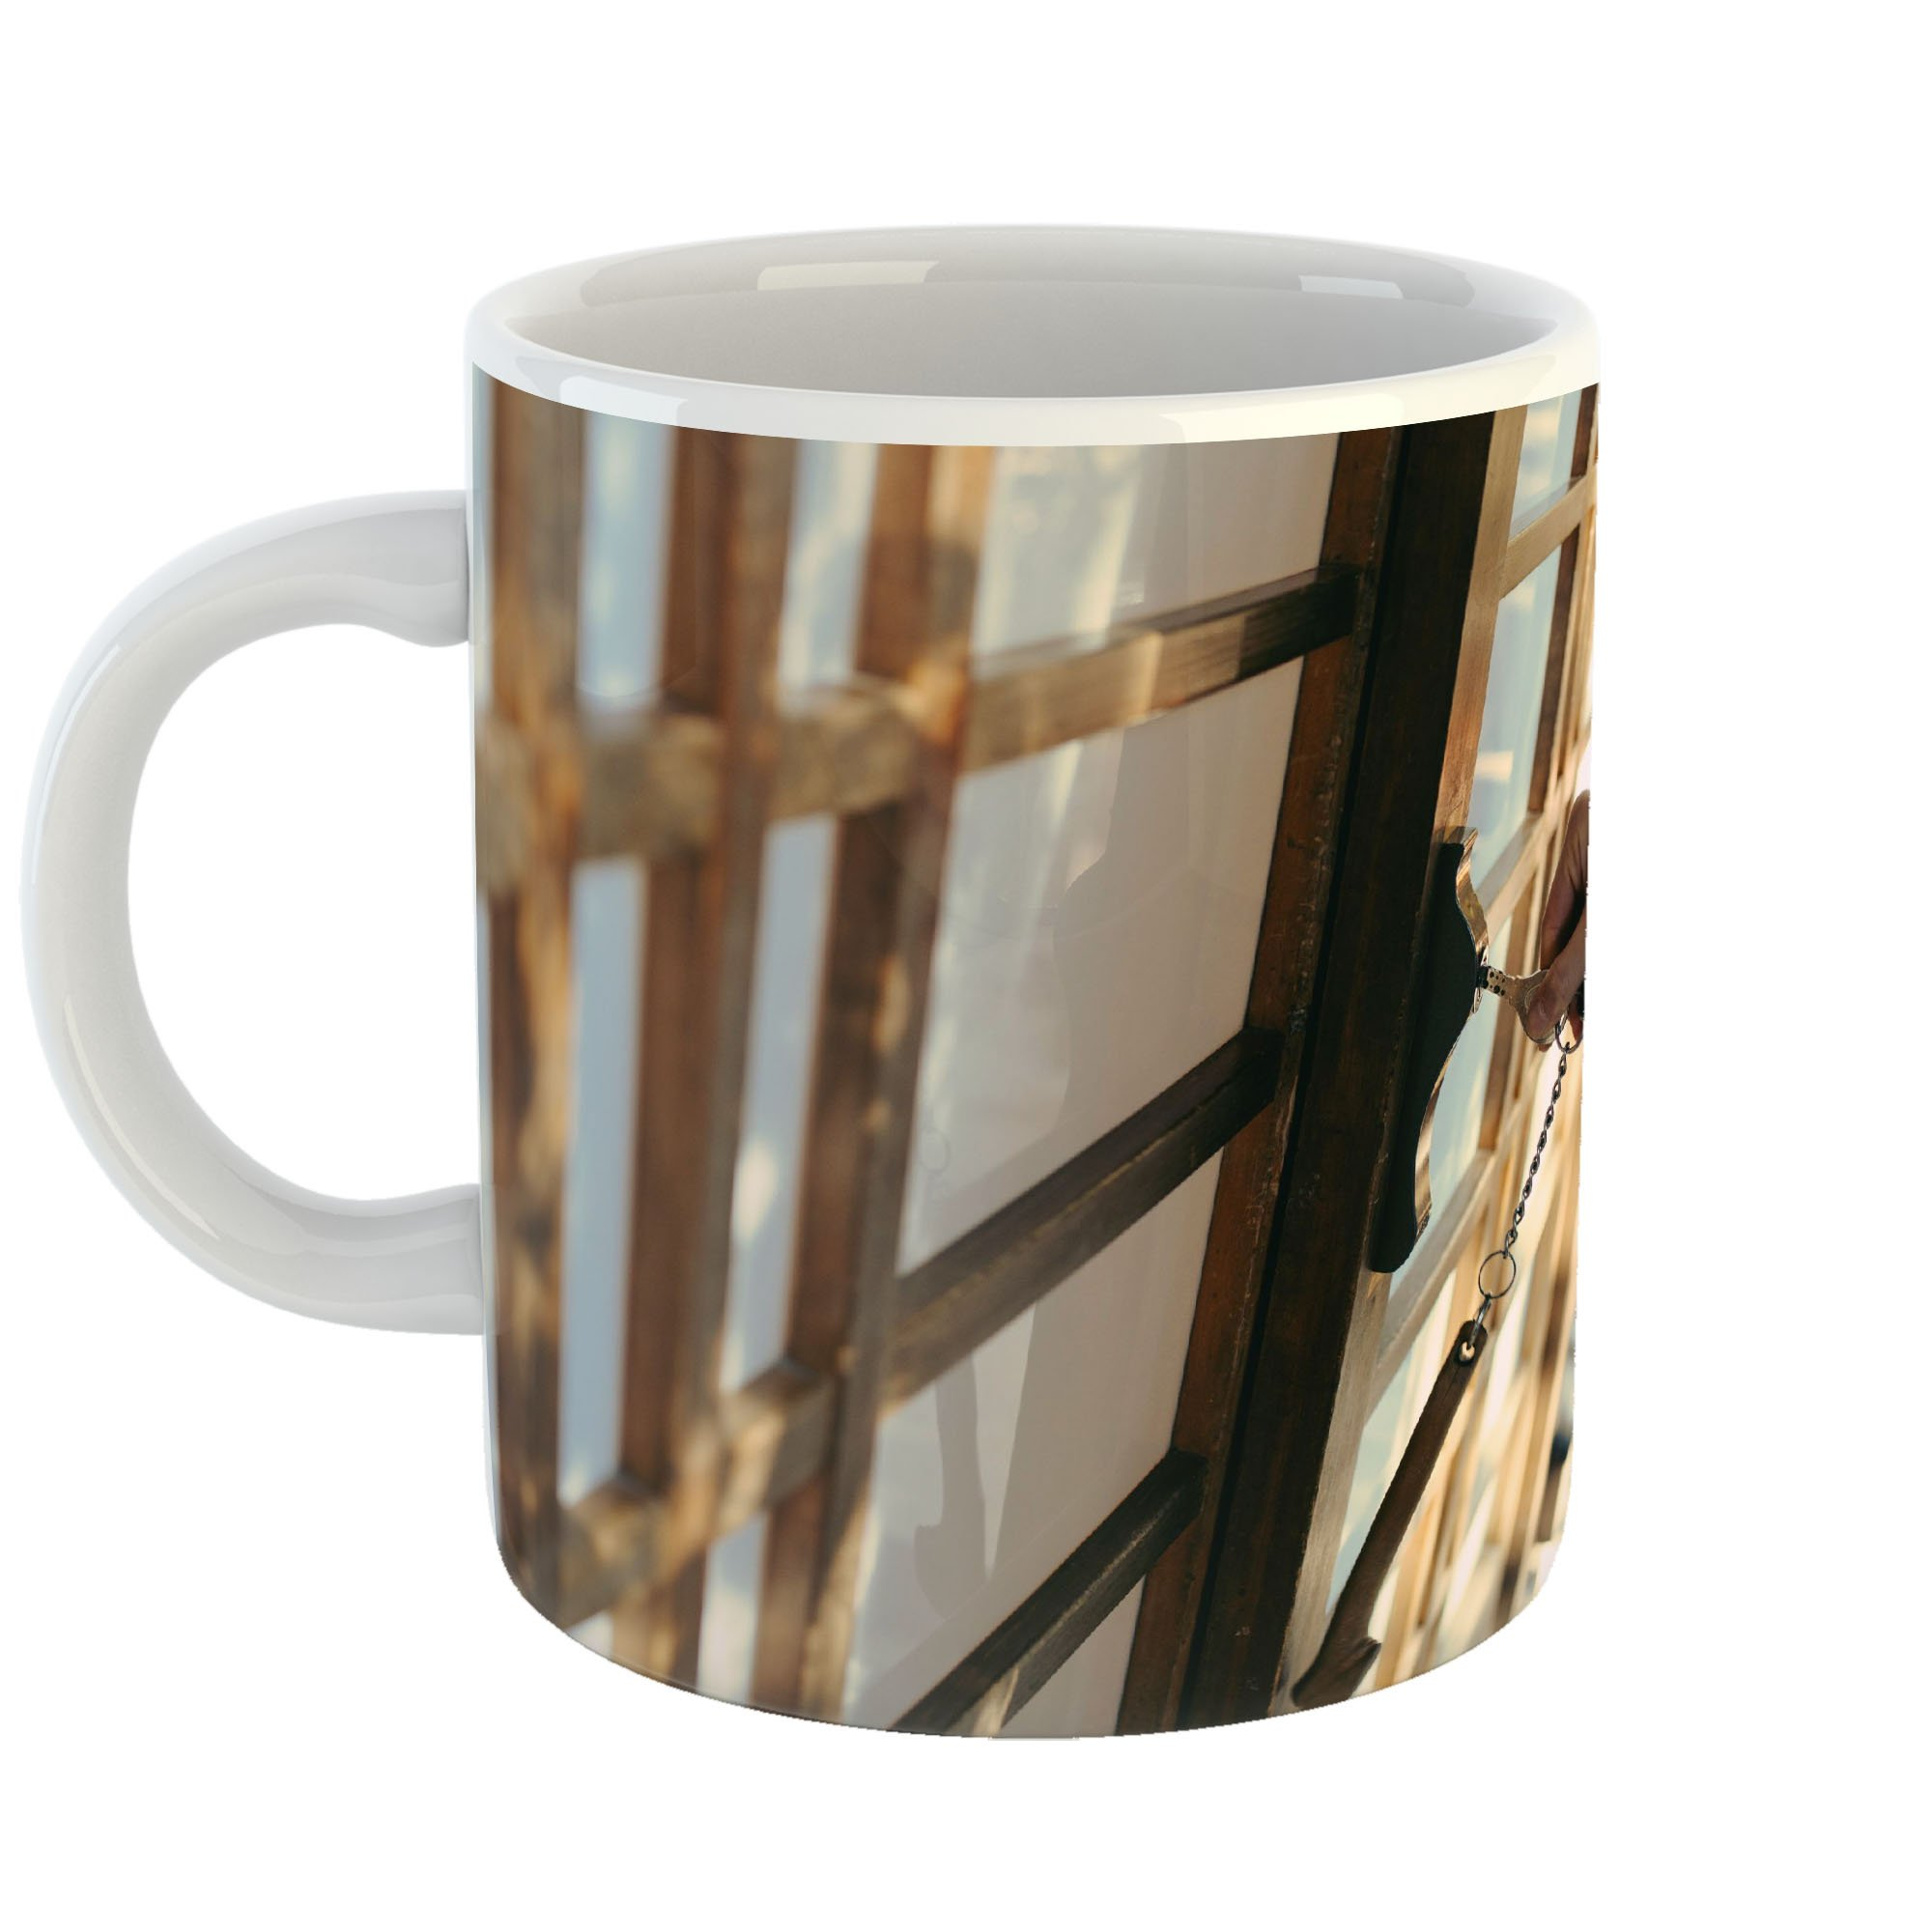 Westlake Art - Asium Hotel - 11oz Coffee Cup Mug - Modern Picture Photography Artwork Home Office Birthday Gift - 11 Ounce (14F9-5DFB0)